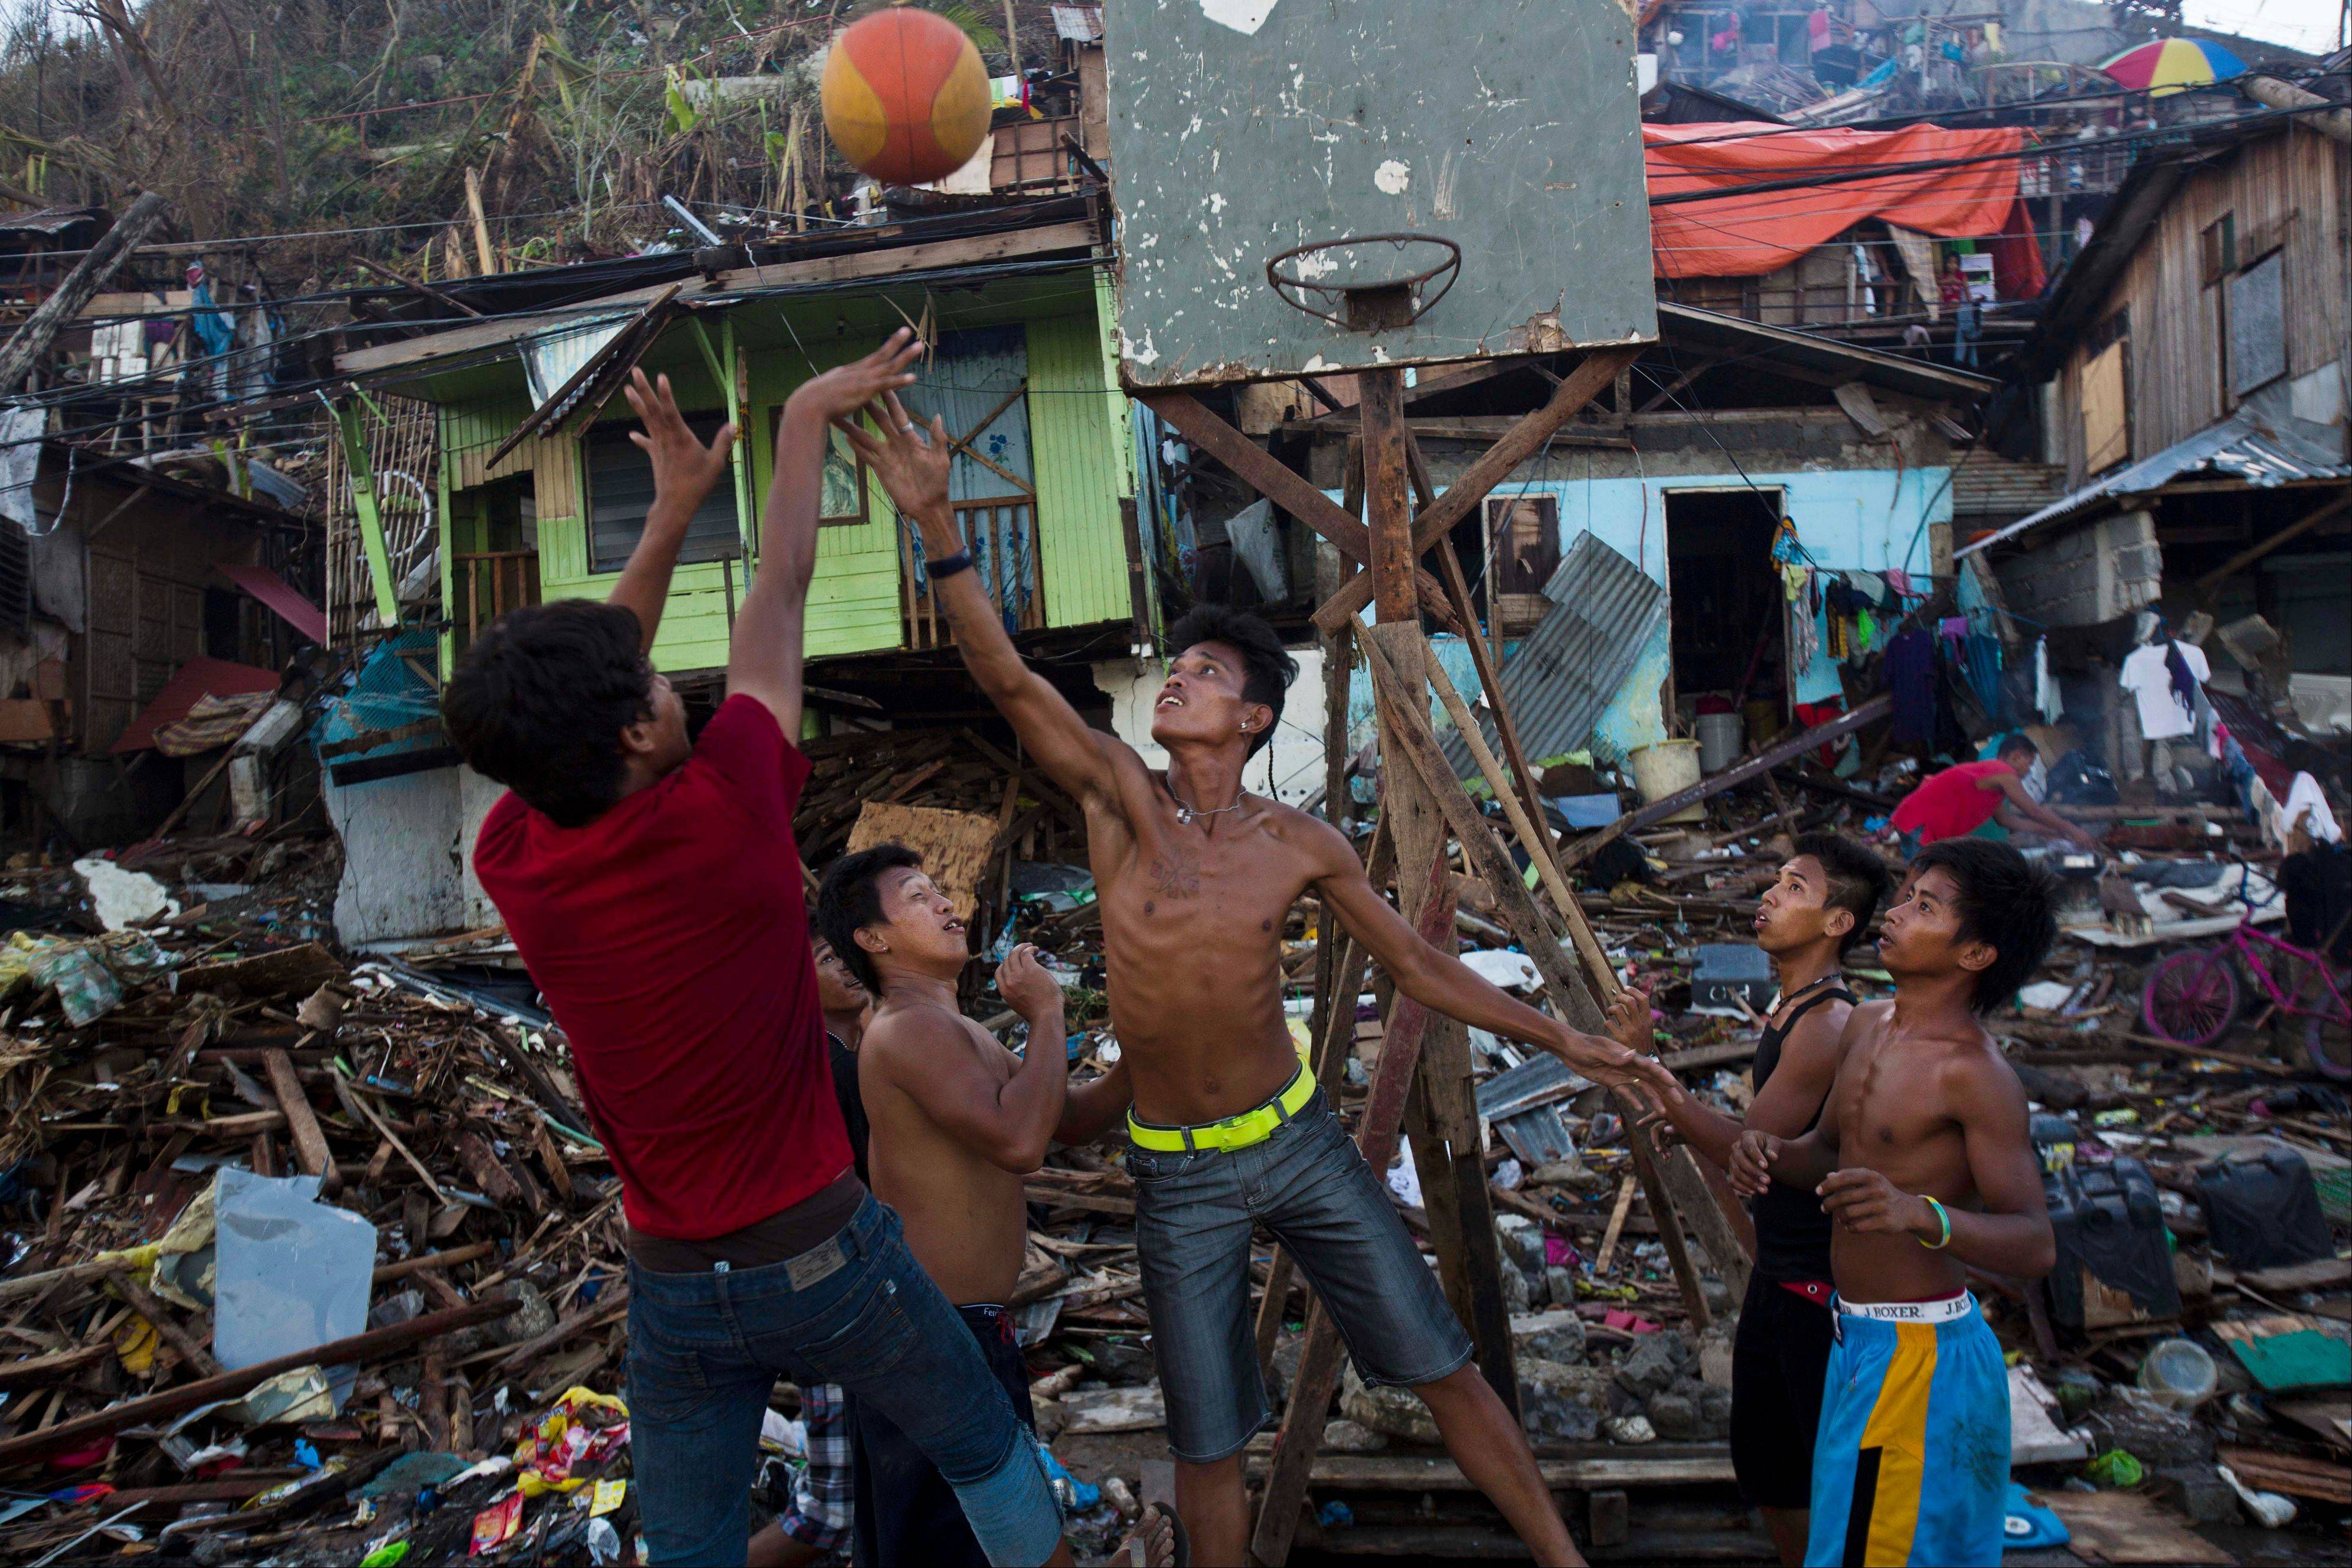 Signs of life amid misery reveal Filipinos' spirit